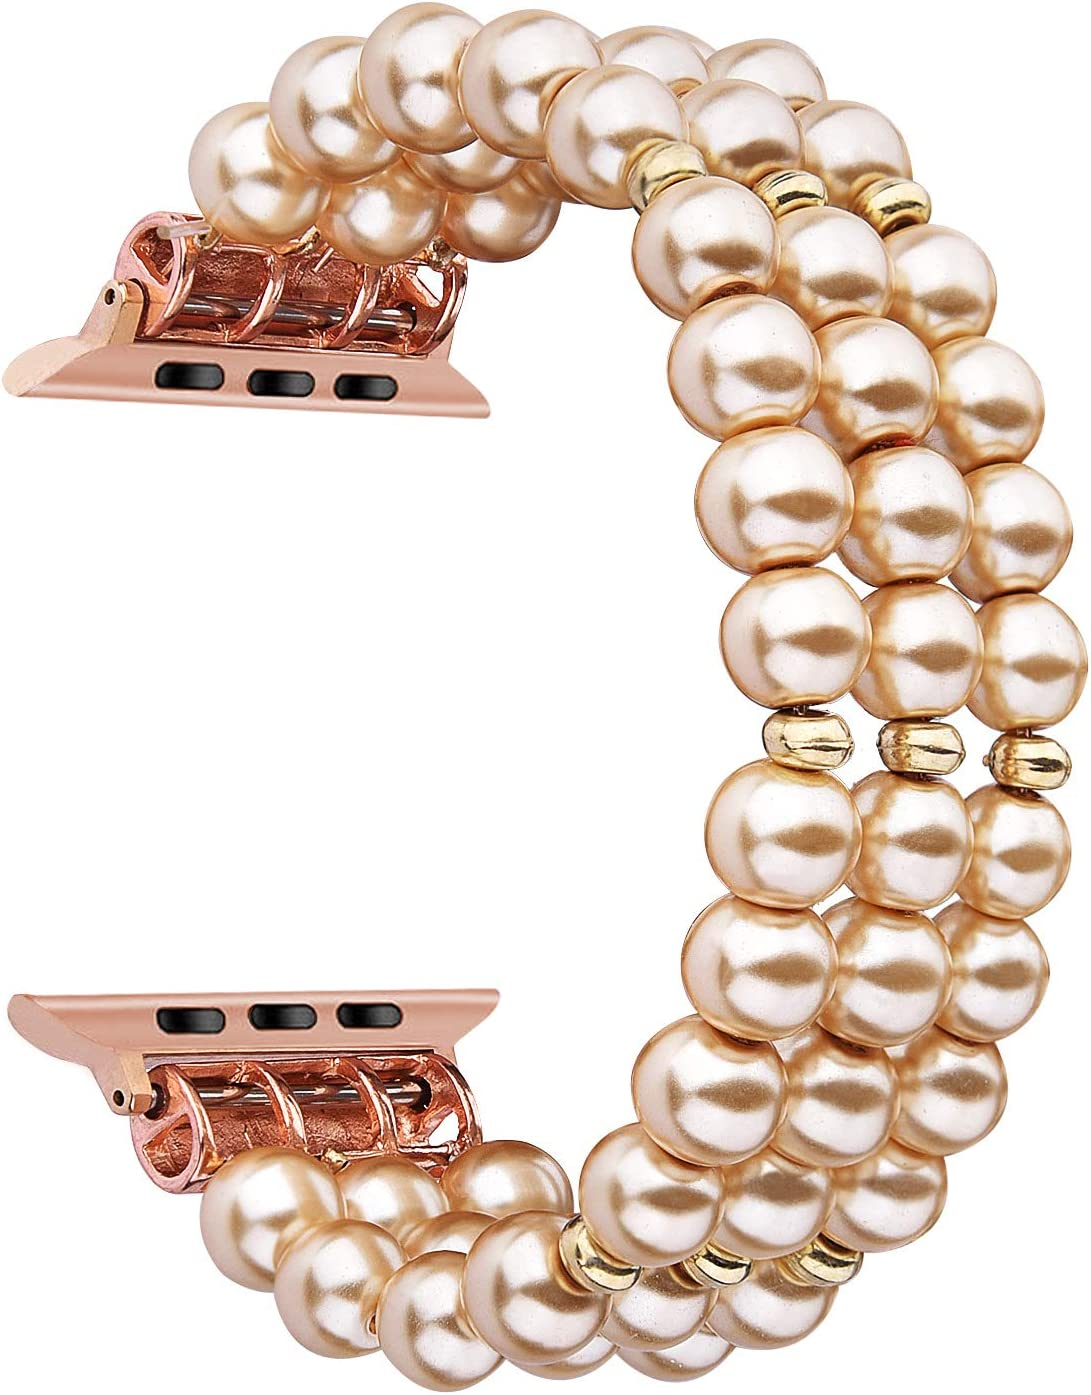 CAGOS Pearl Bracelet Compatible with Apple Watch Band 40mm/38mm Women Girl, Cute Handmade Fashion Elastic Stretch Beaded Strap Compatible for iWatch Series 5/4/3/2/1 (Champagne, 38mm/40mm)